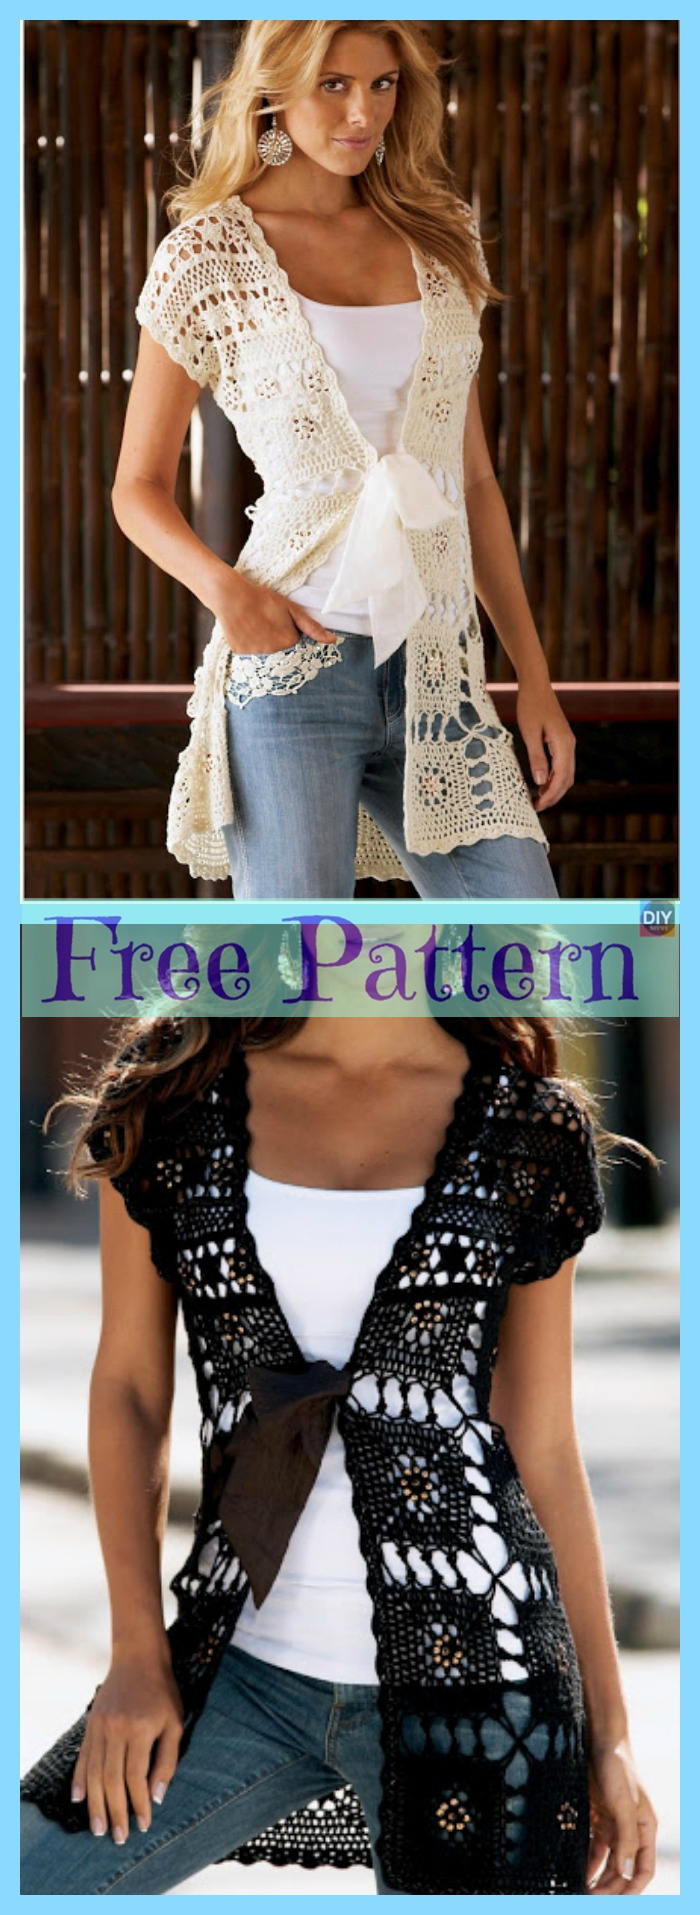 diy4ever-Crochet Lace Summer Tops - Free Patterns